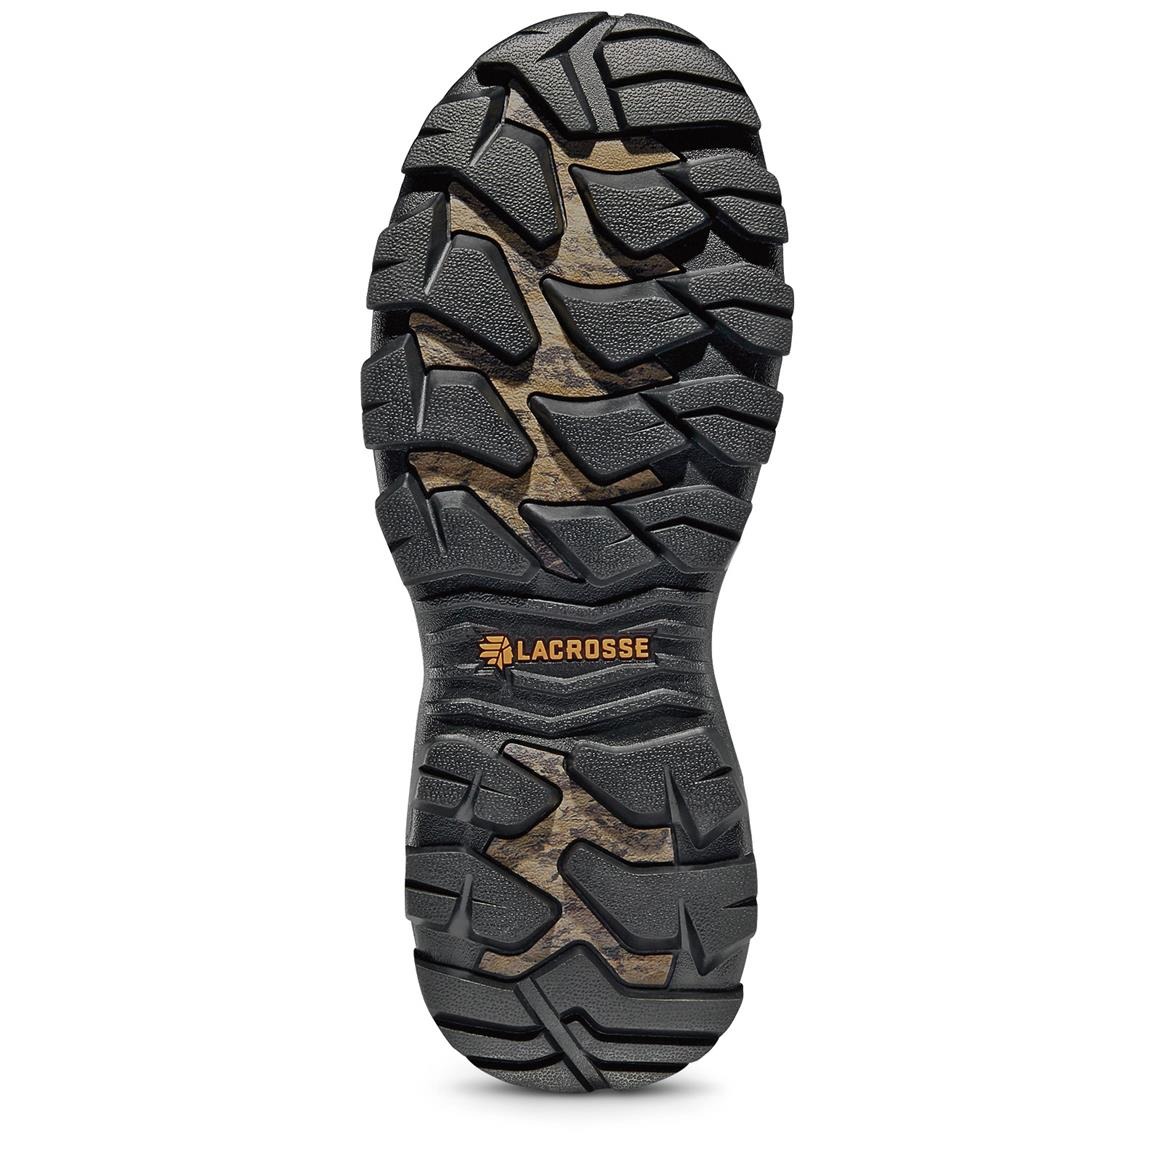 Burly Pro outsole delivers perfect traction on almost any terrain, and releases stability